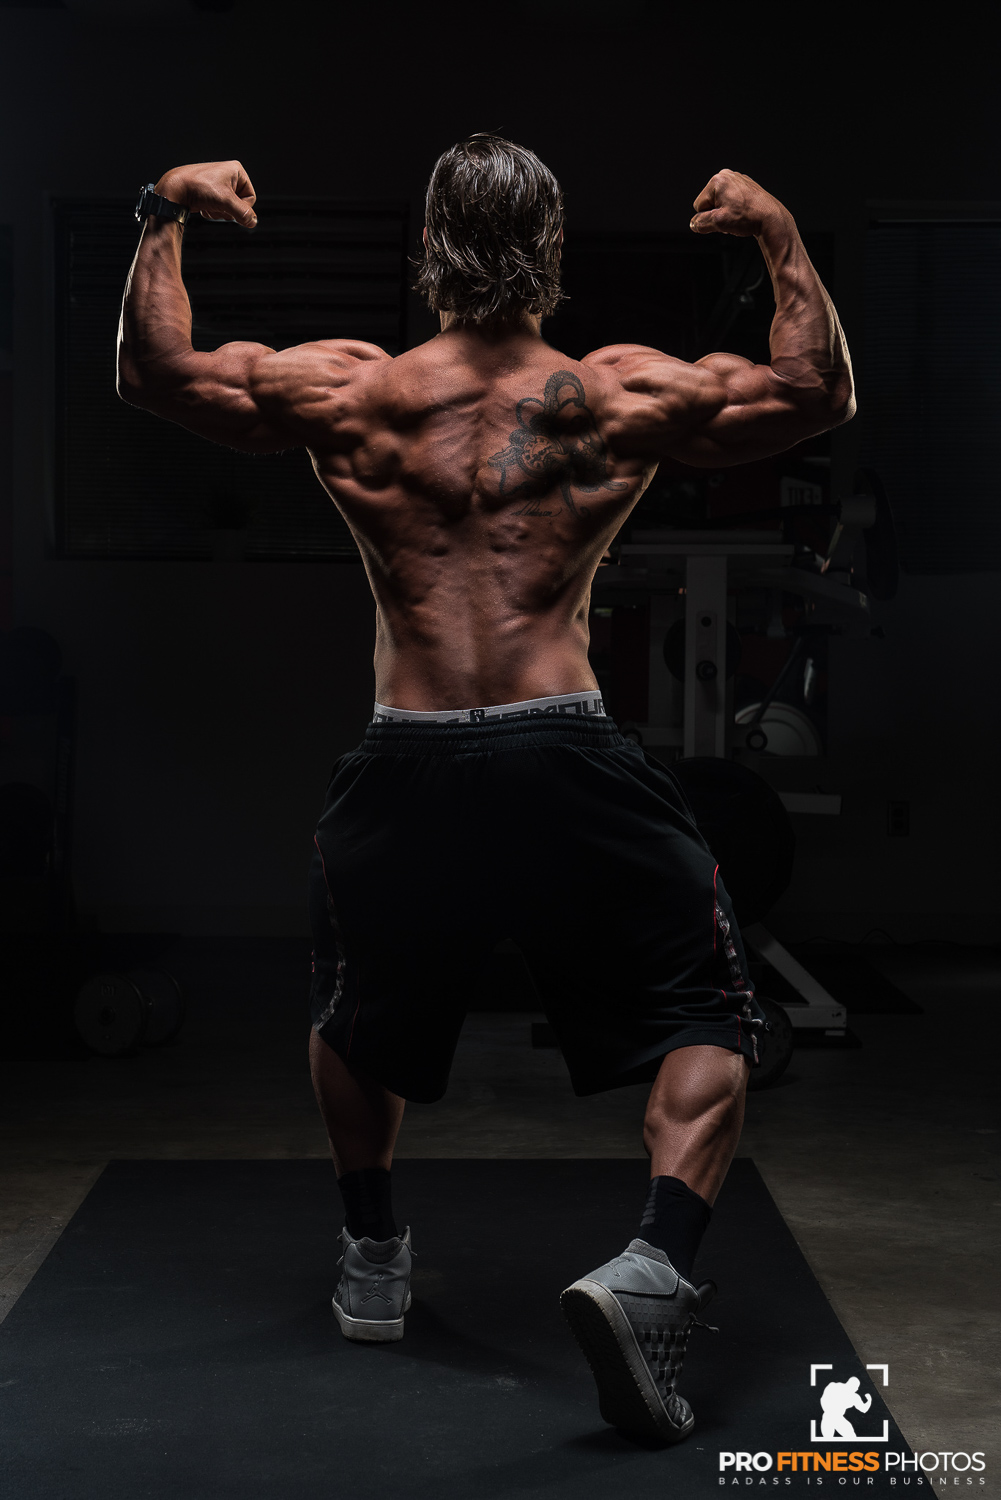 utah-fitness-photographer-dane-03.jpg